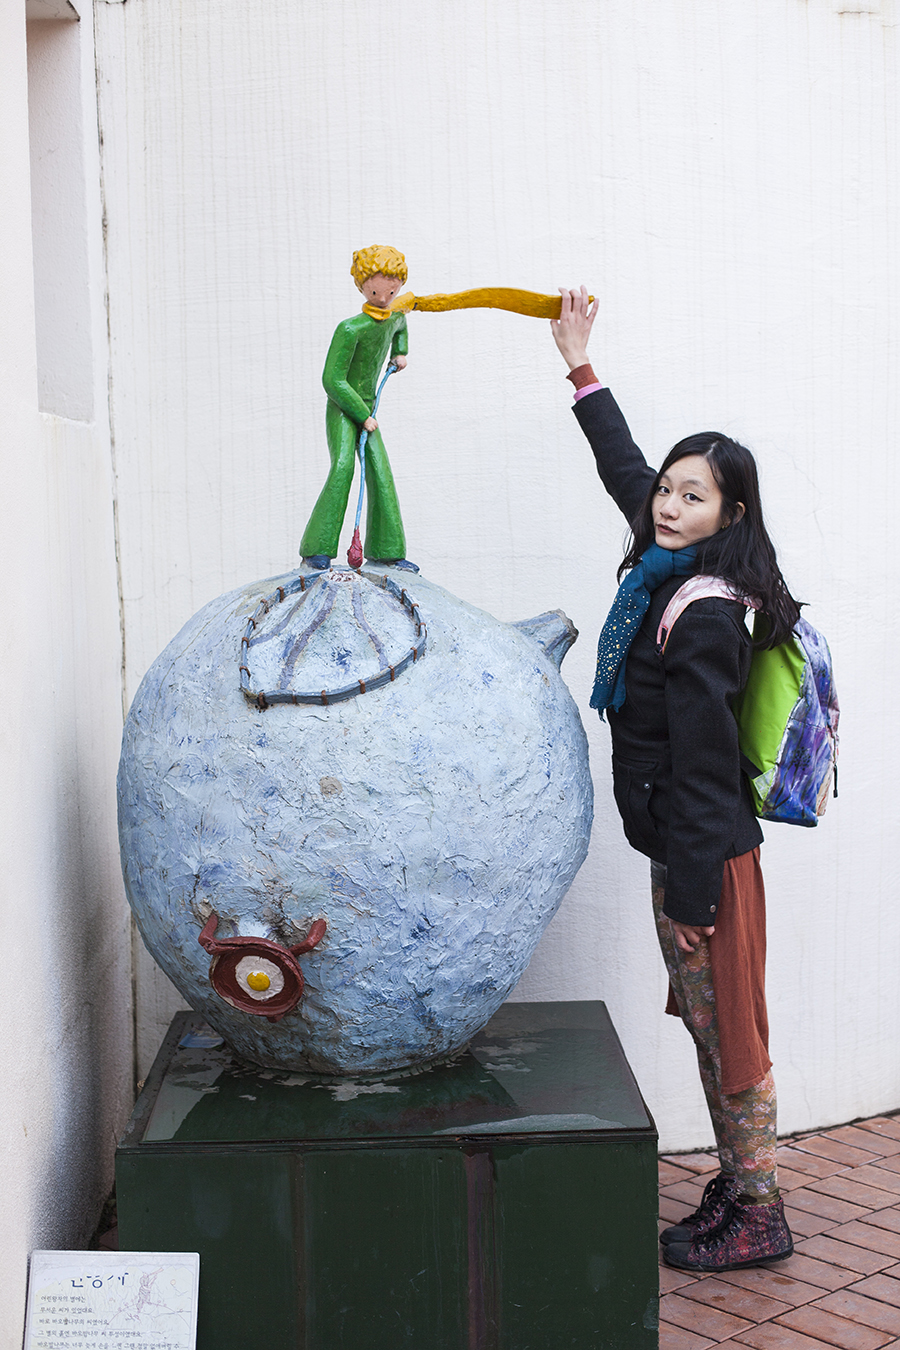 Posing with a sculpture of  the Little Prince on an asteroid at Le Petit France, Gapyeong, South Korea.